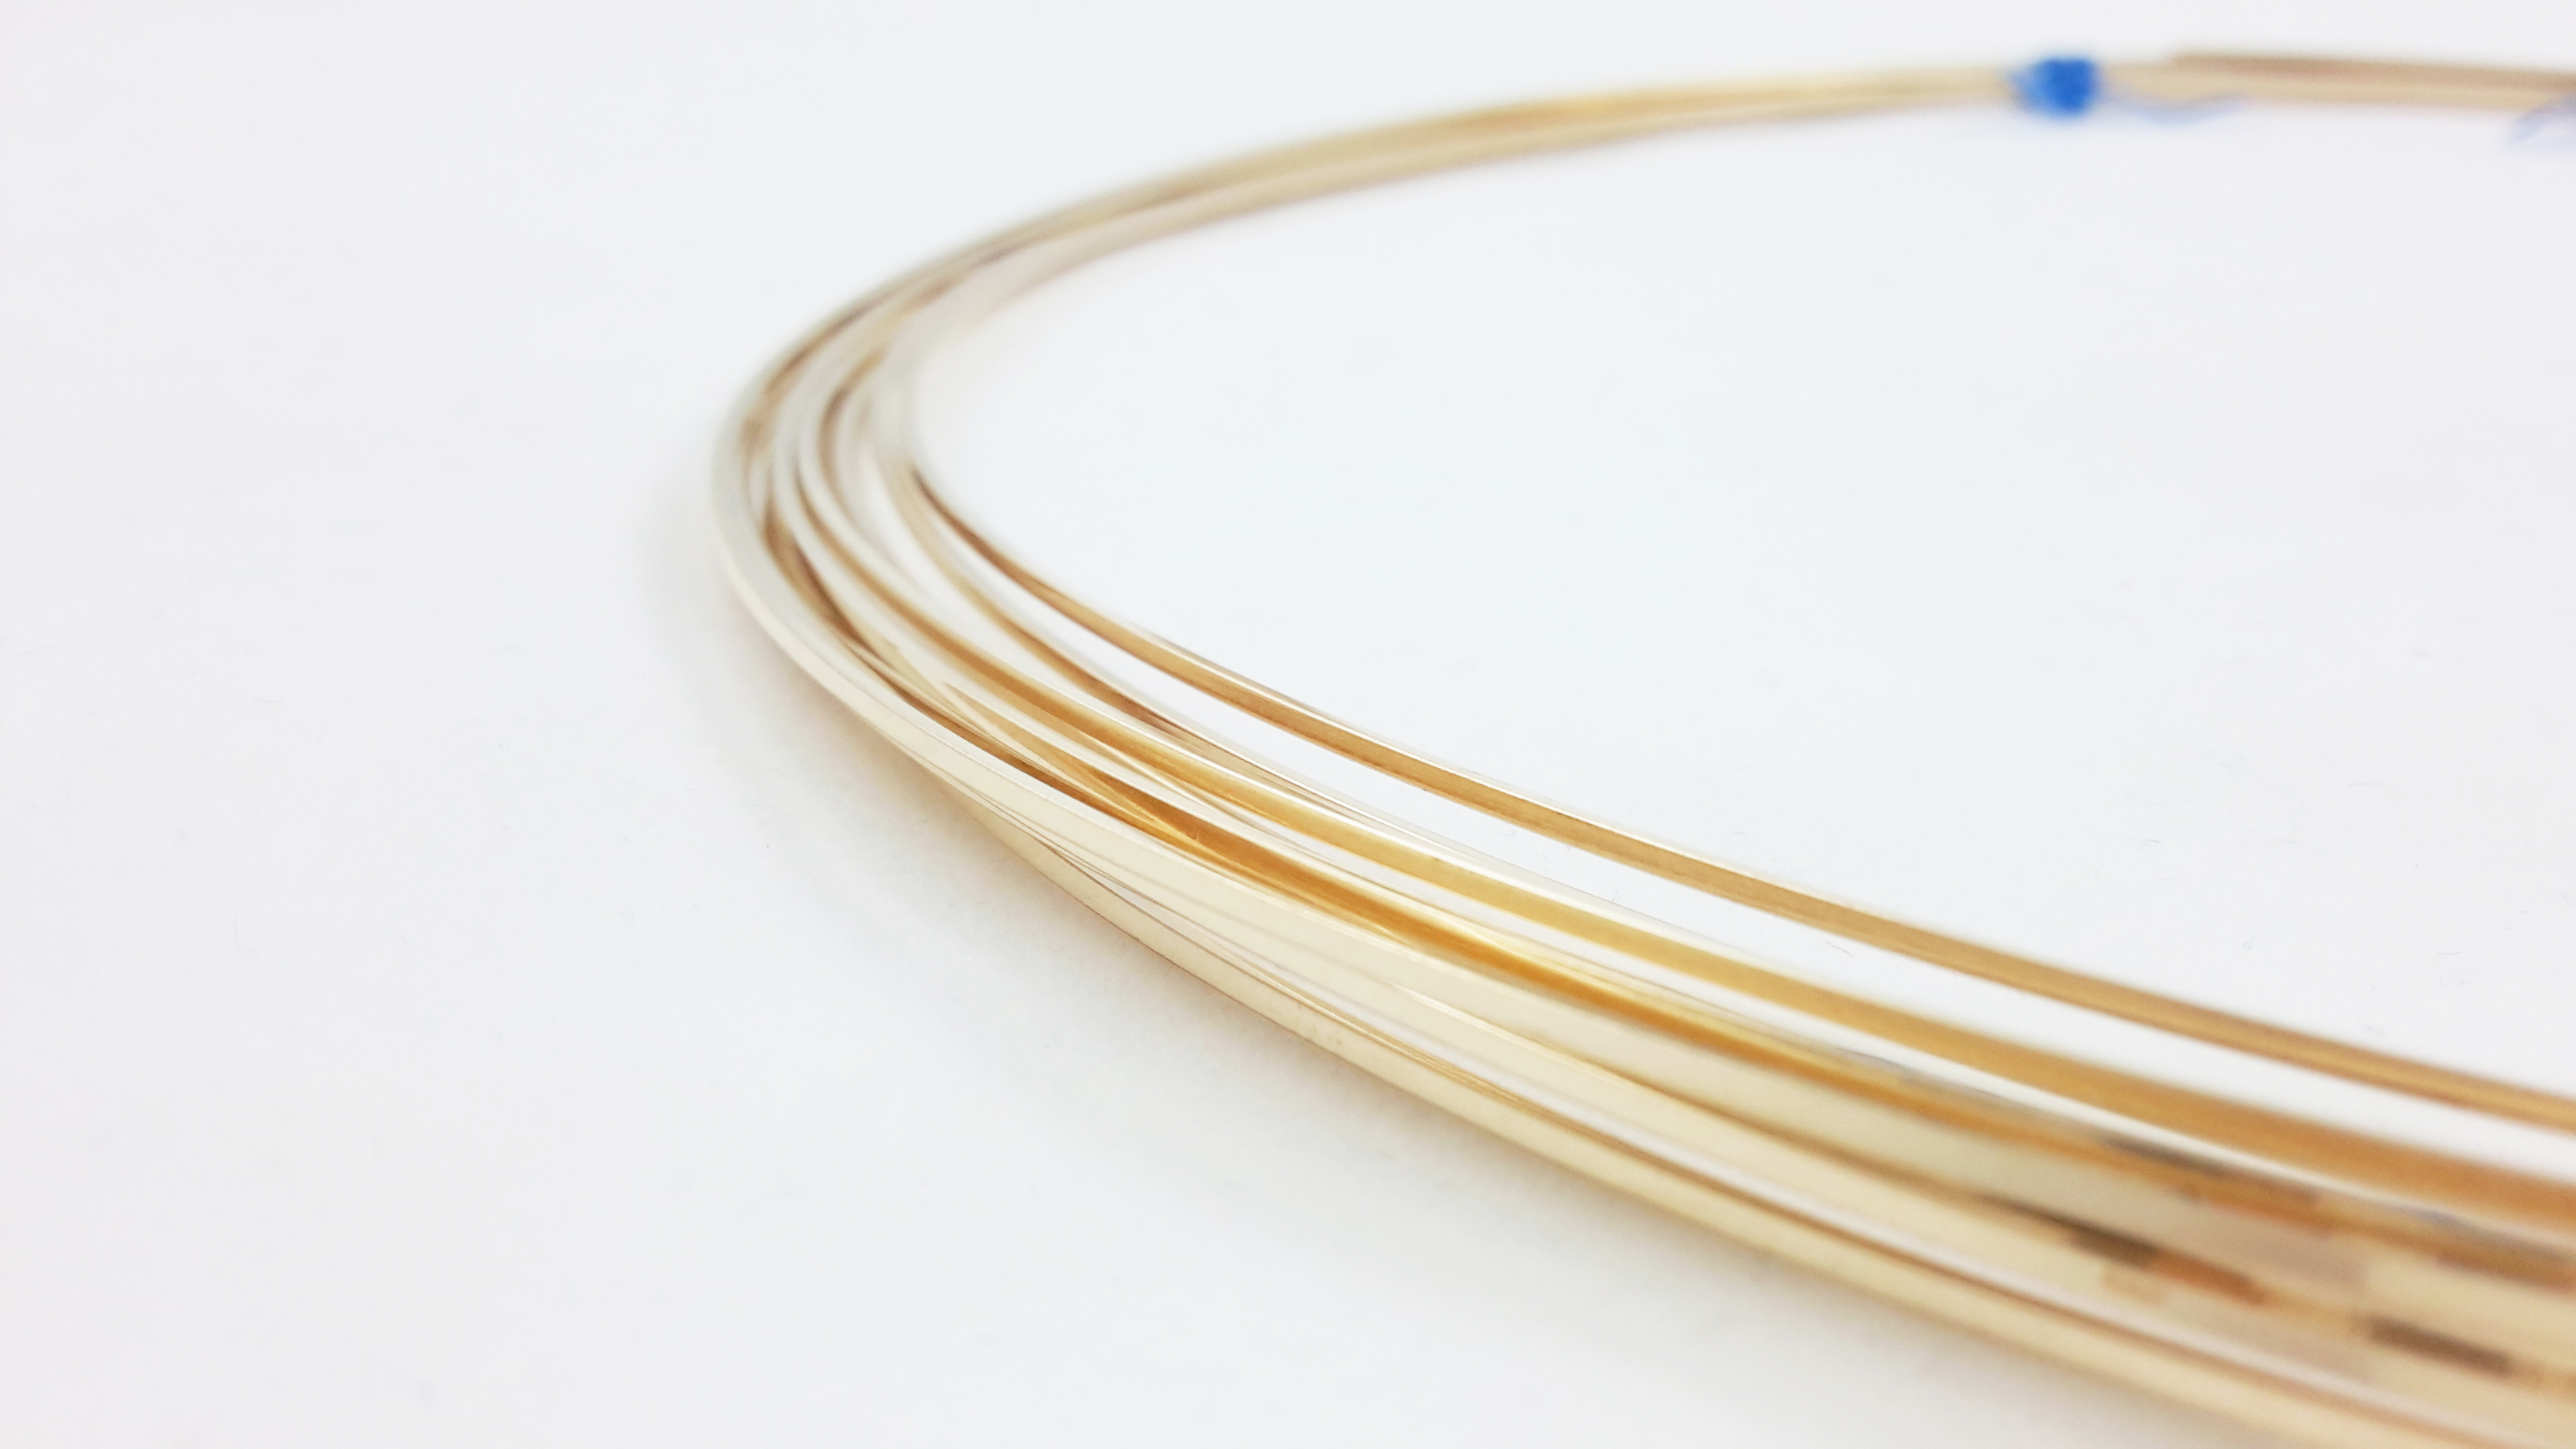 14k Solid Gold Wire Round Dead Soft M Y Jewelry Supply